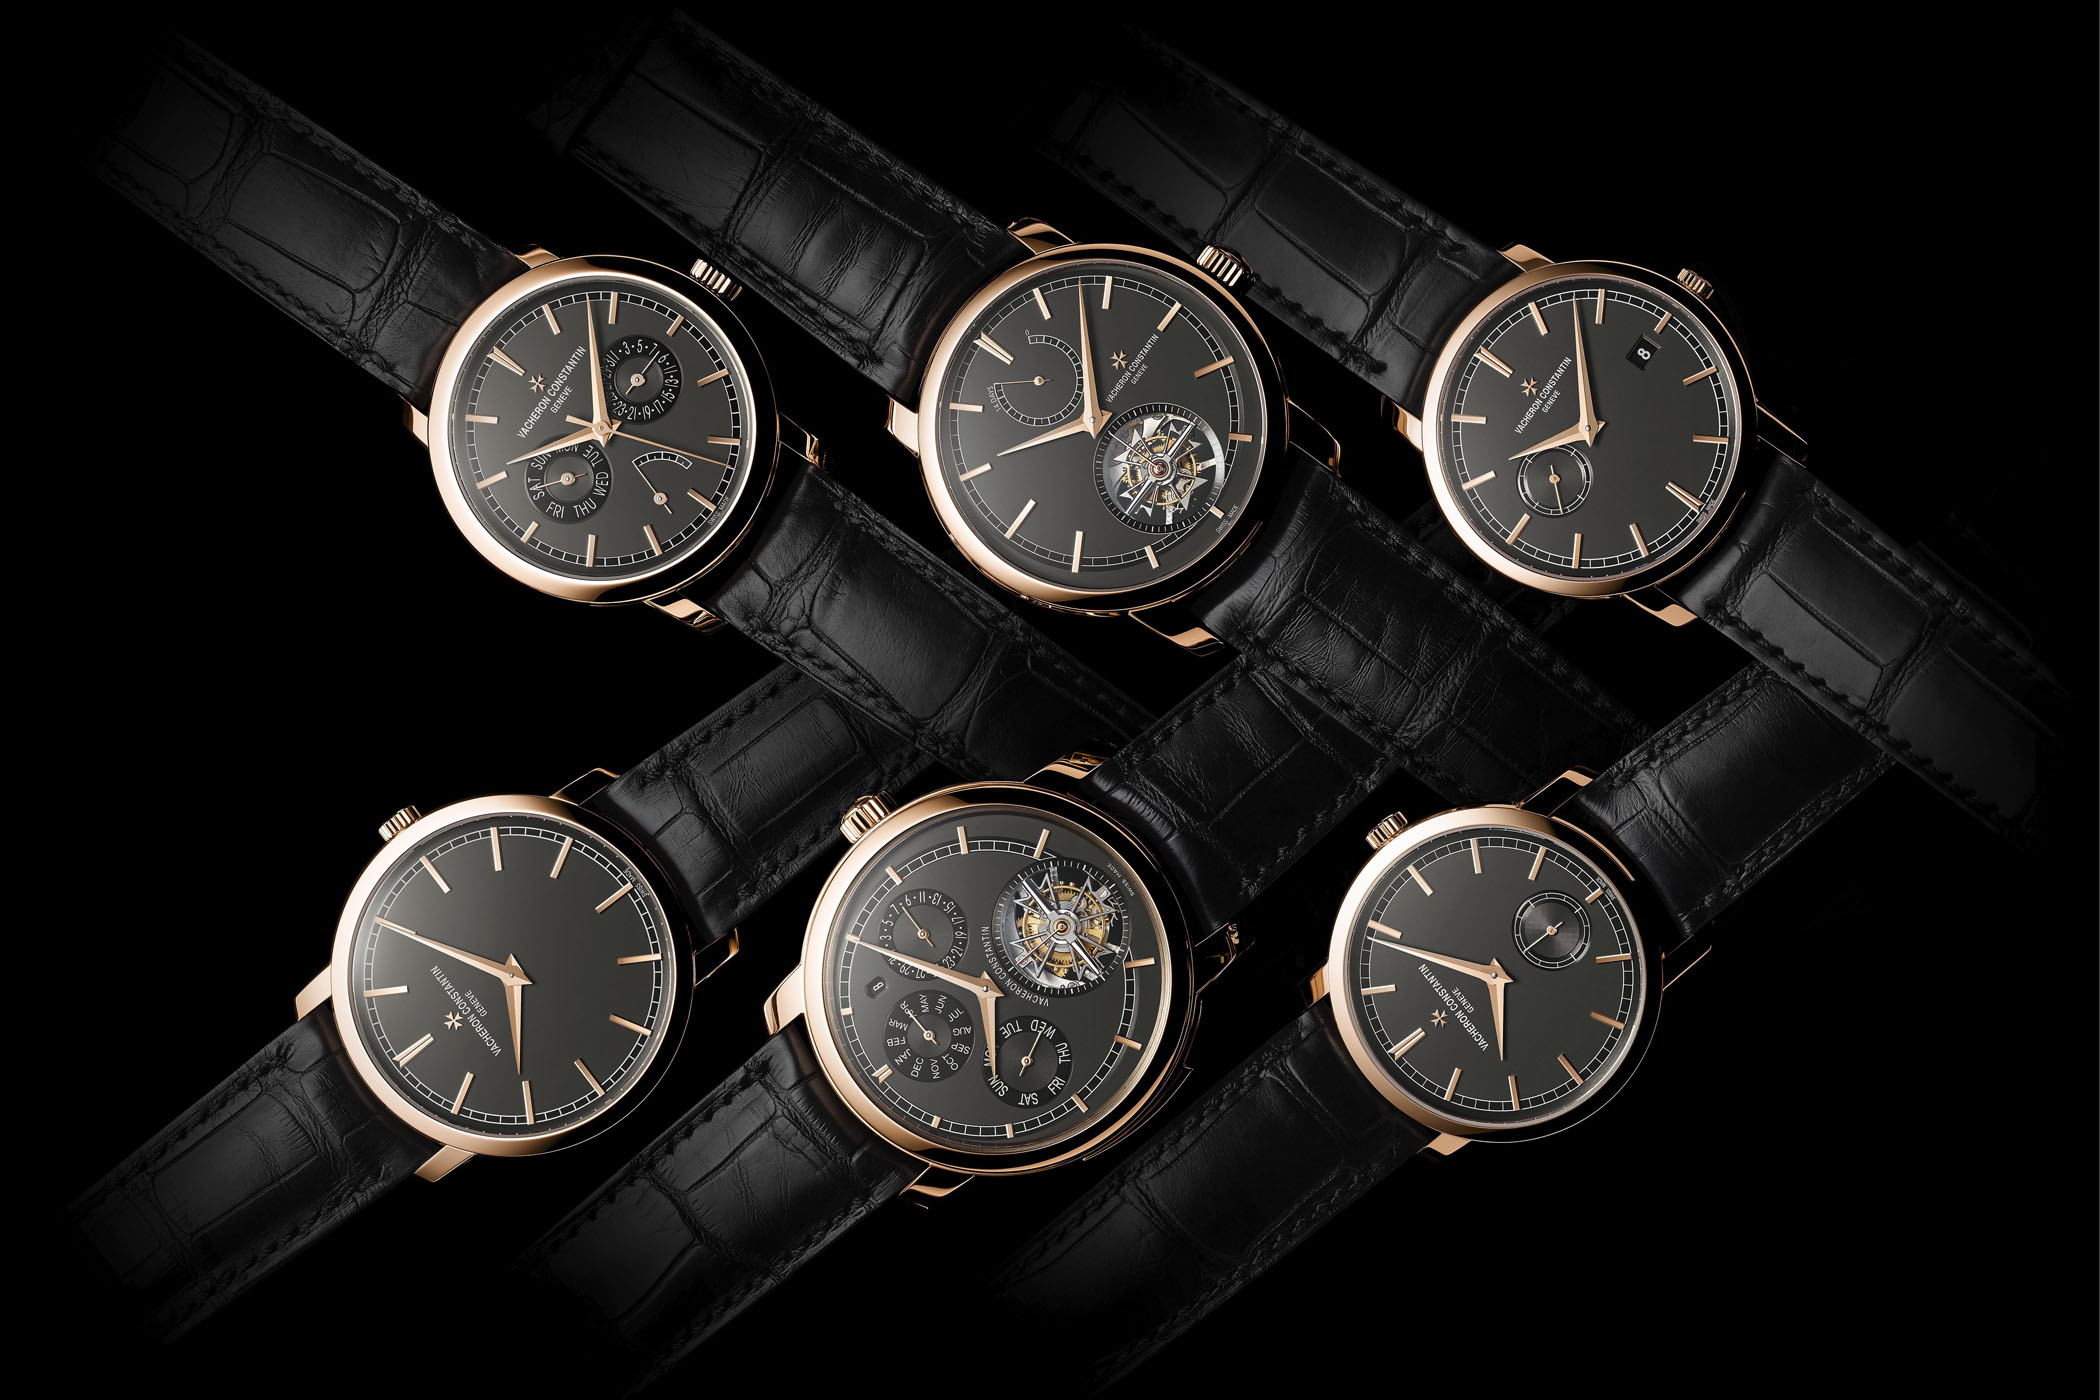 Vacheron Constantin Traditionnelle slate grey pink gold collection